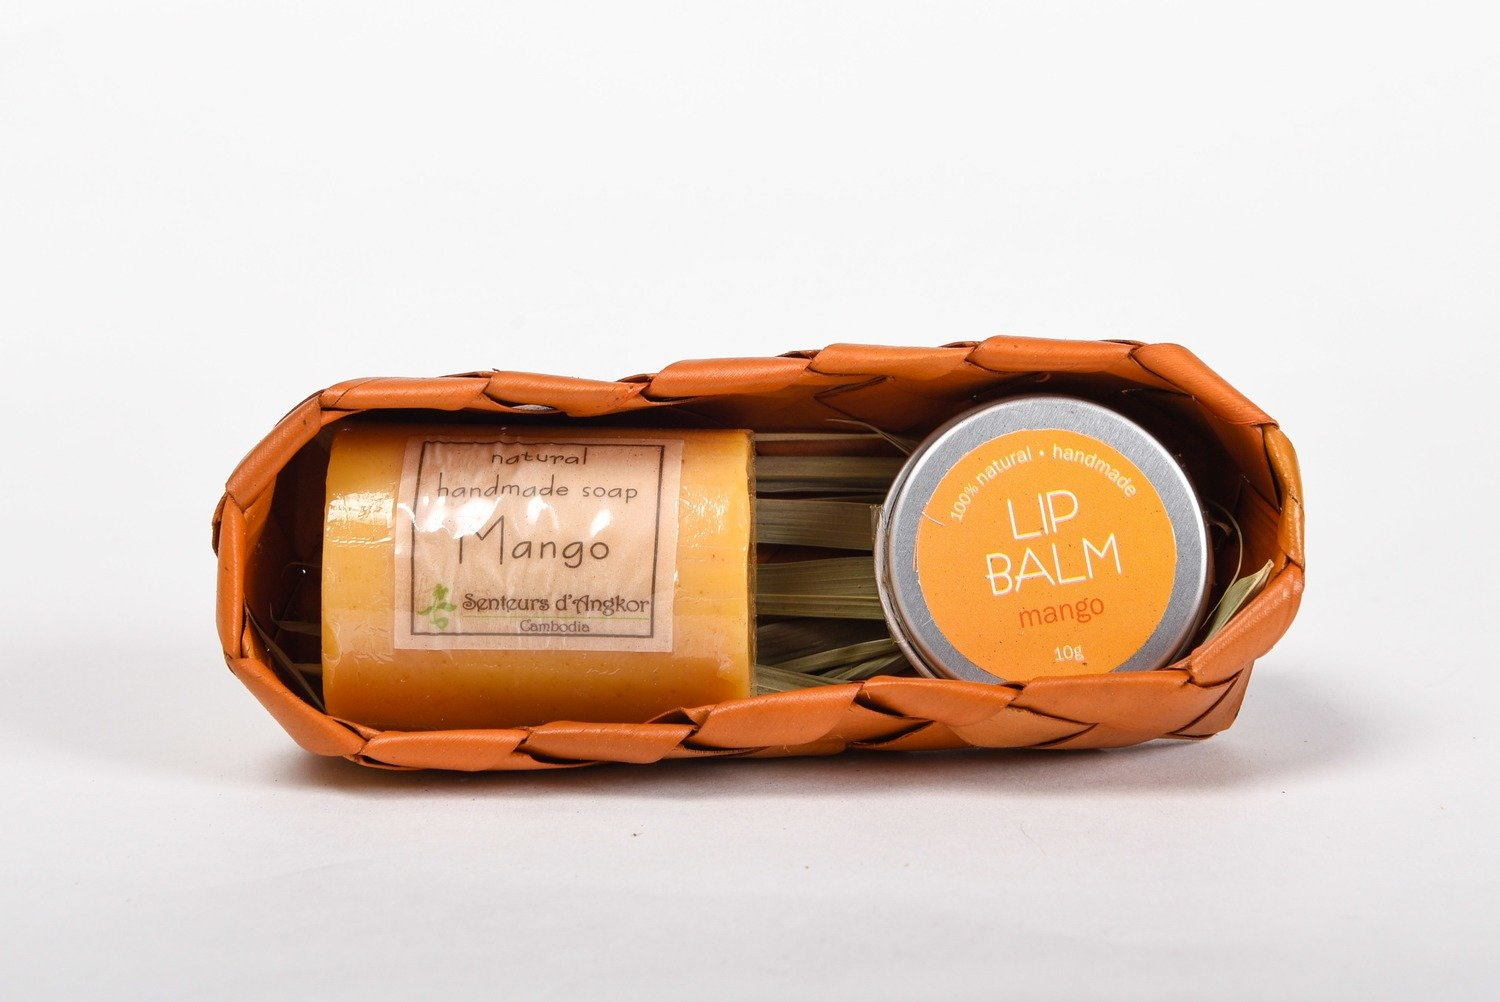 Coffret (Lip Balm and Soap) - Mango